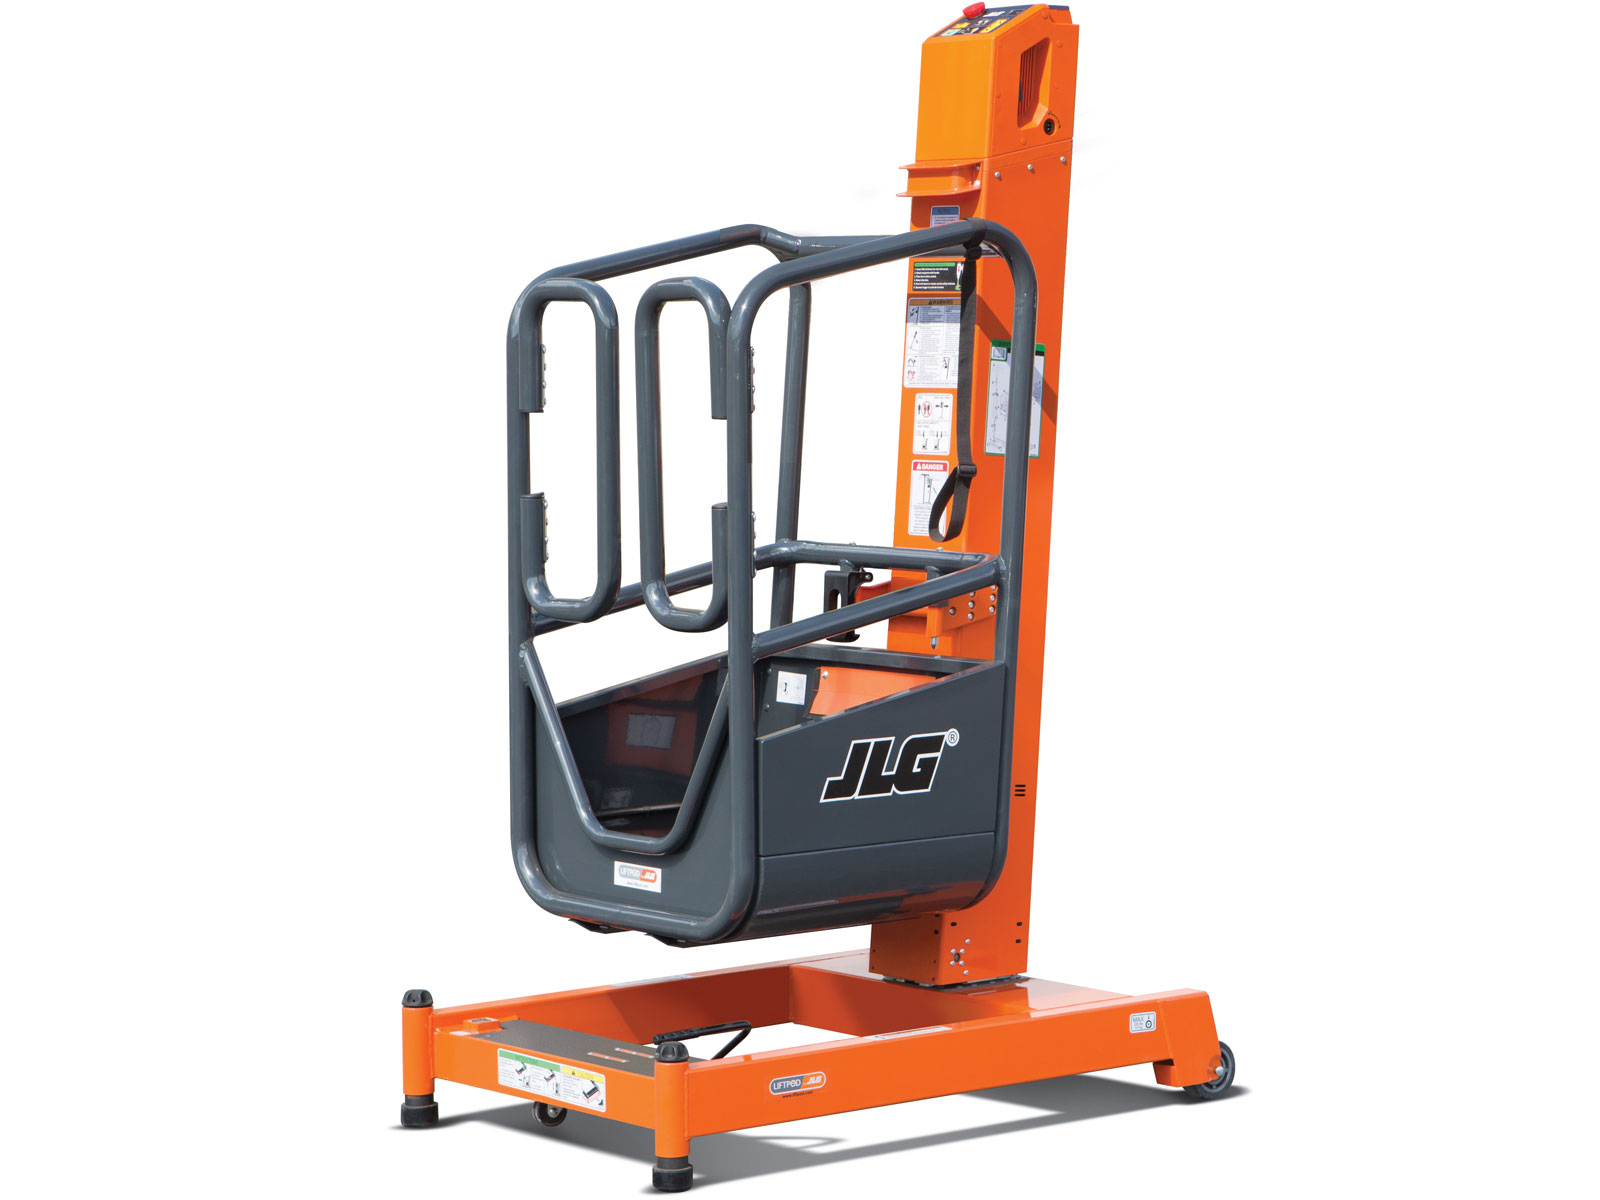 Jlg Liftpod Personal Portable Lift Ft70 Rental Vertical